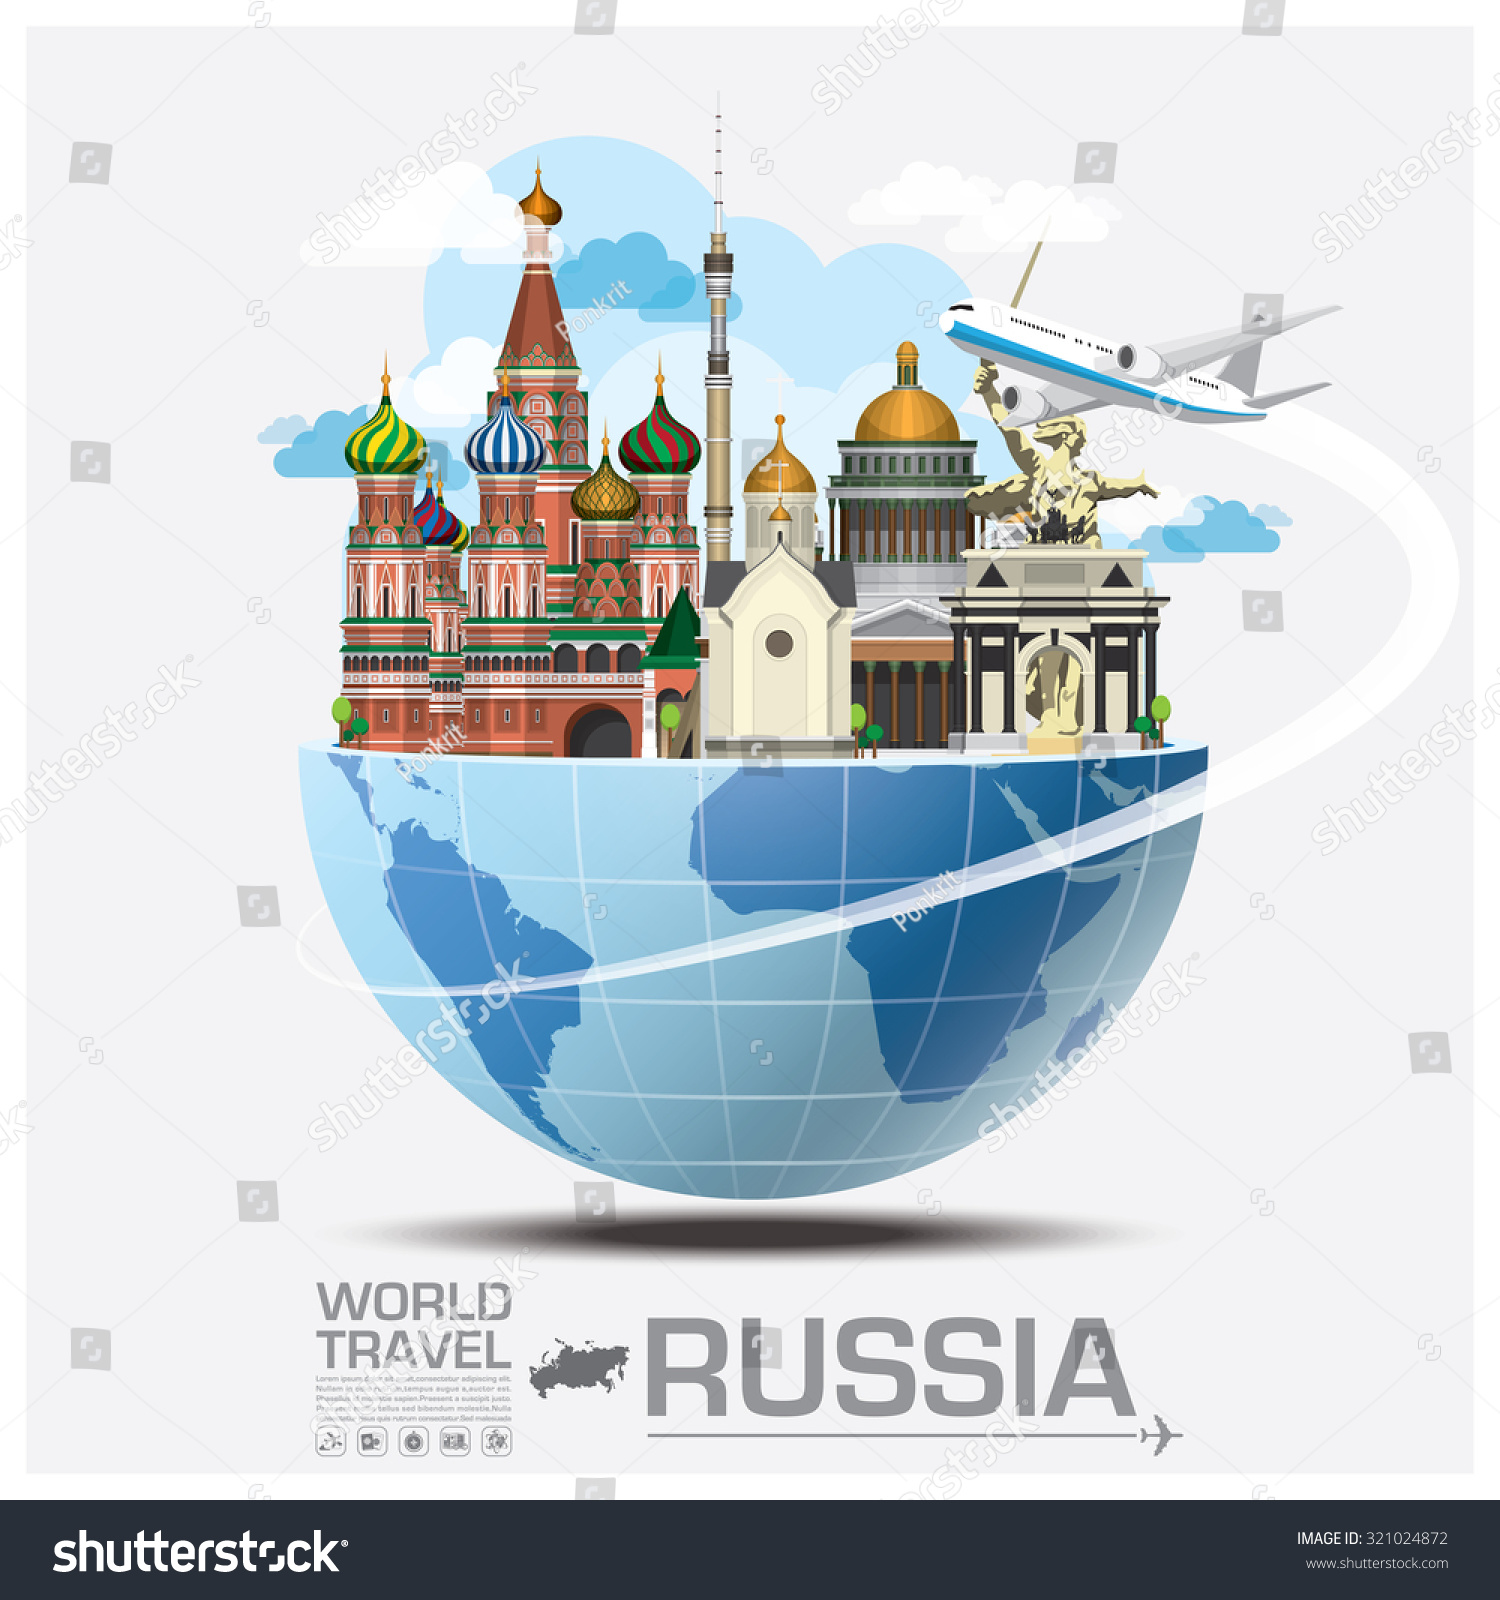 Russia landmark global travel journey infographic stock for Landmark design